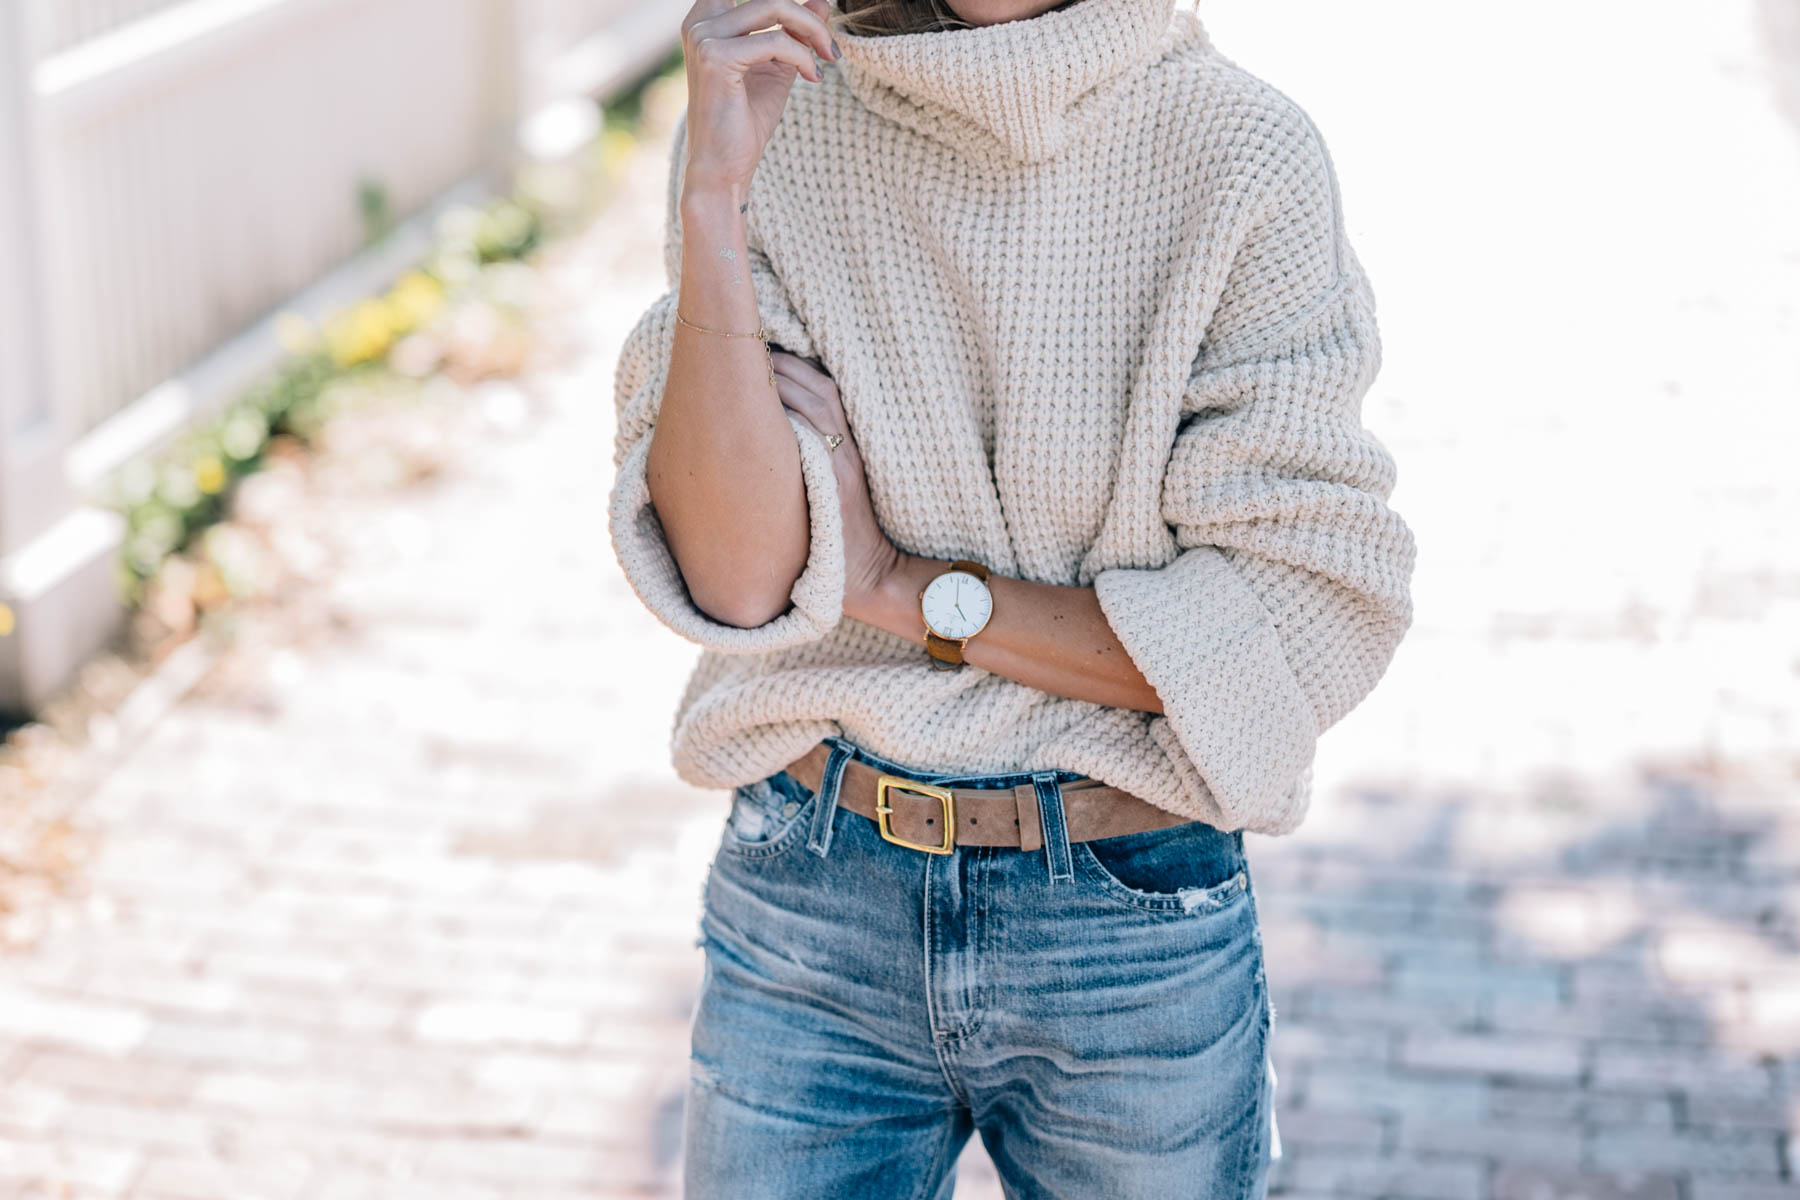 Jess Ann Kirby's fall style in a free people chunky knit turtleneck sweater and rag and bone leather belt